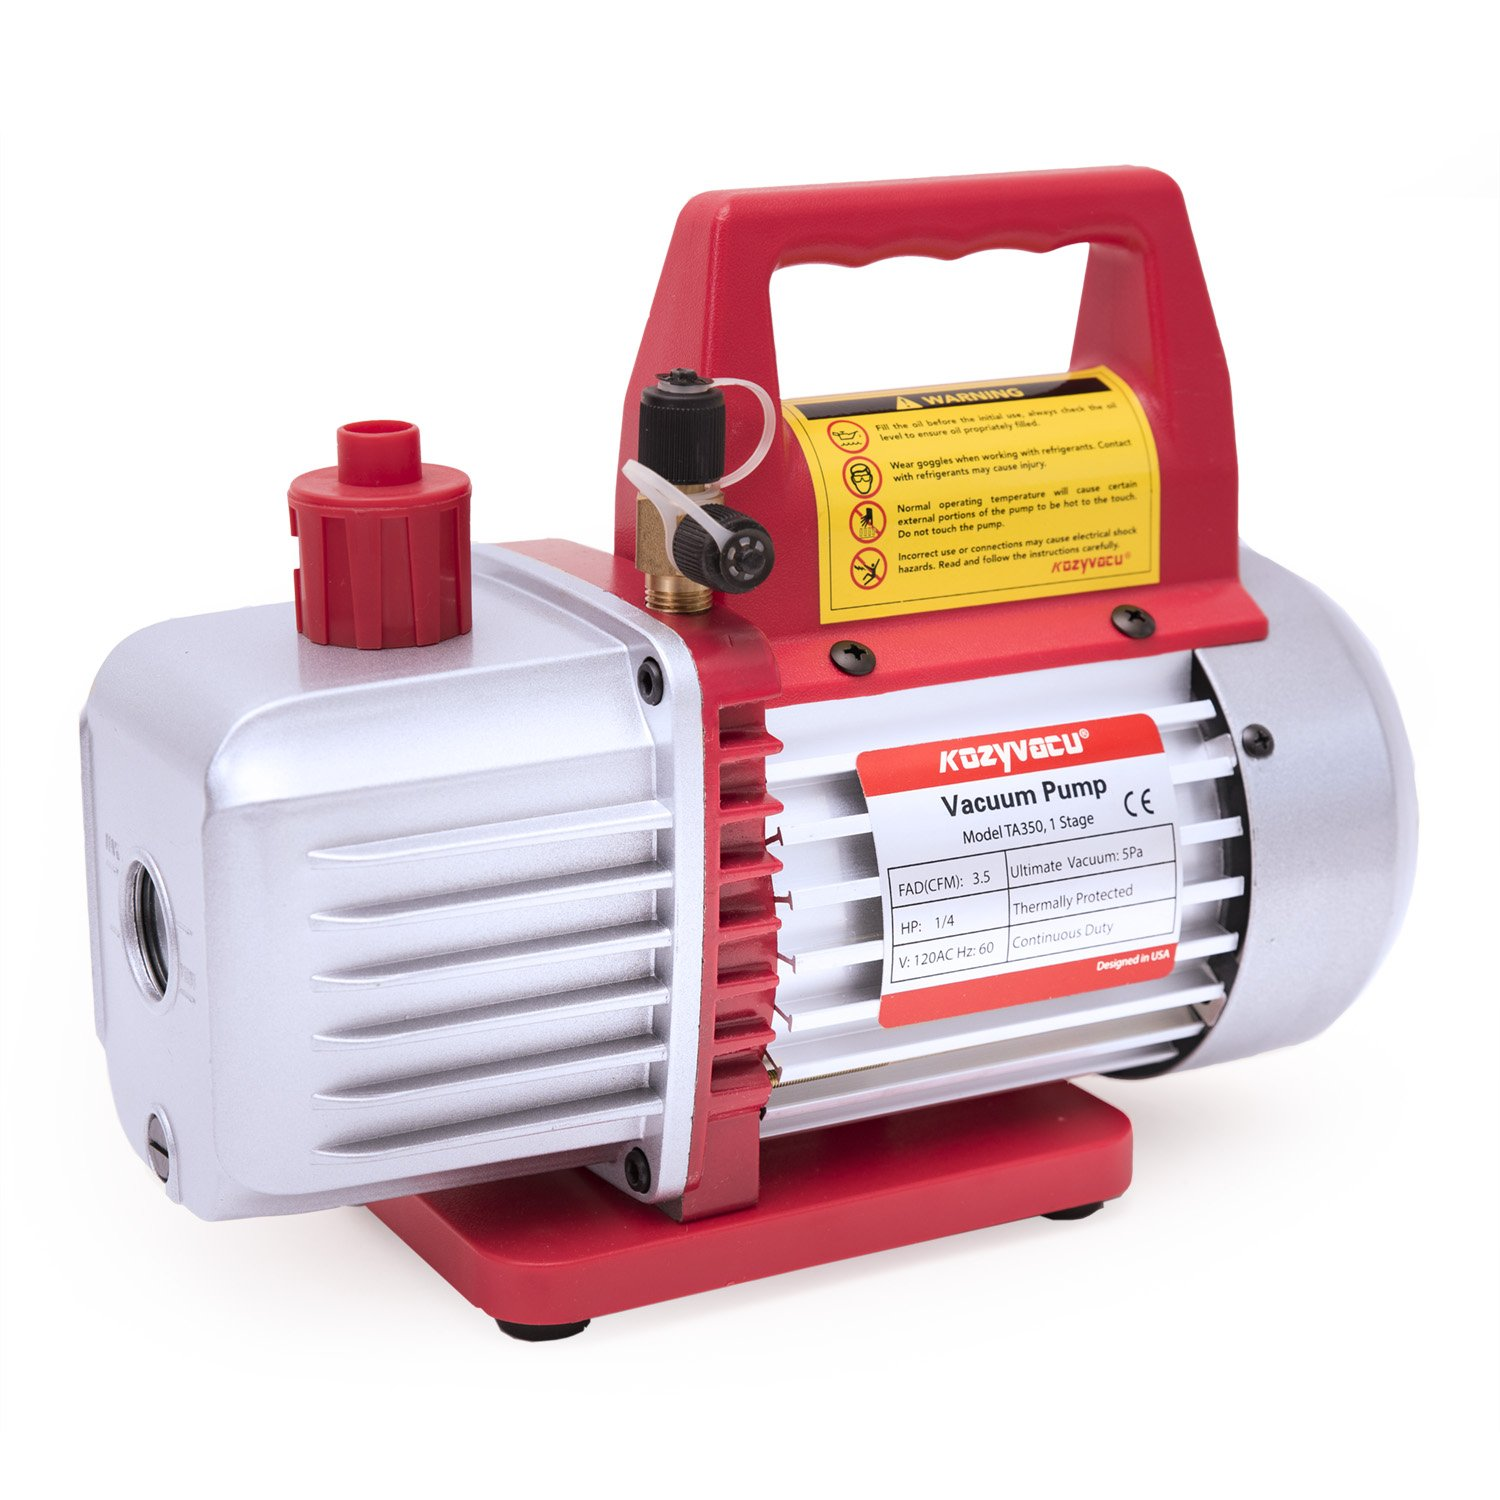 Kozyvacu 3.5CFM 1-Stage Rotary Vane Vacuum Pump (3.5CFM, 150Micron, 1/4HP) for HVAC/Auto AC Refrigerant Recharging, Degassing wine or epoxy, Milking cow or lamb, Medical, Food Processing etc.